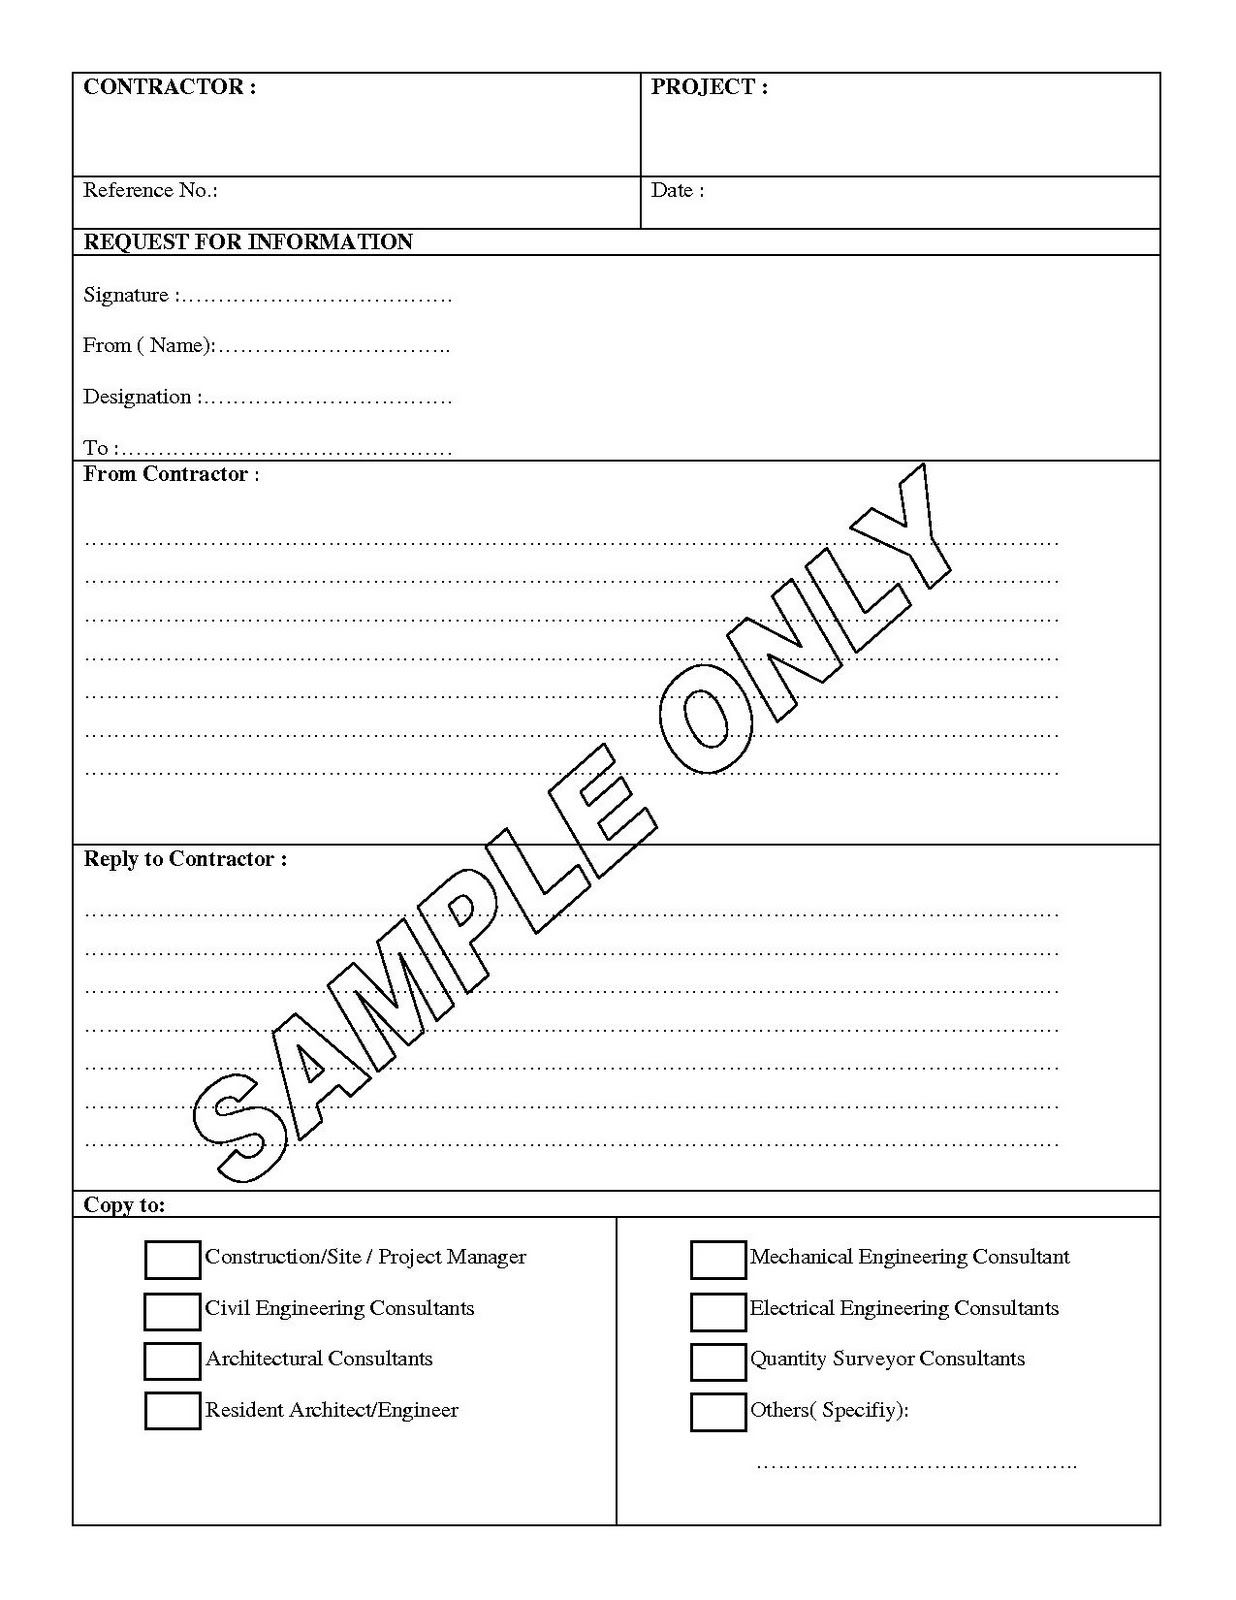 sample rfp response template 8 free documents in pdf rfi rfp – Construction Form Templates